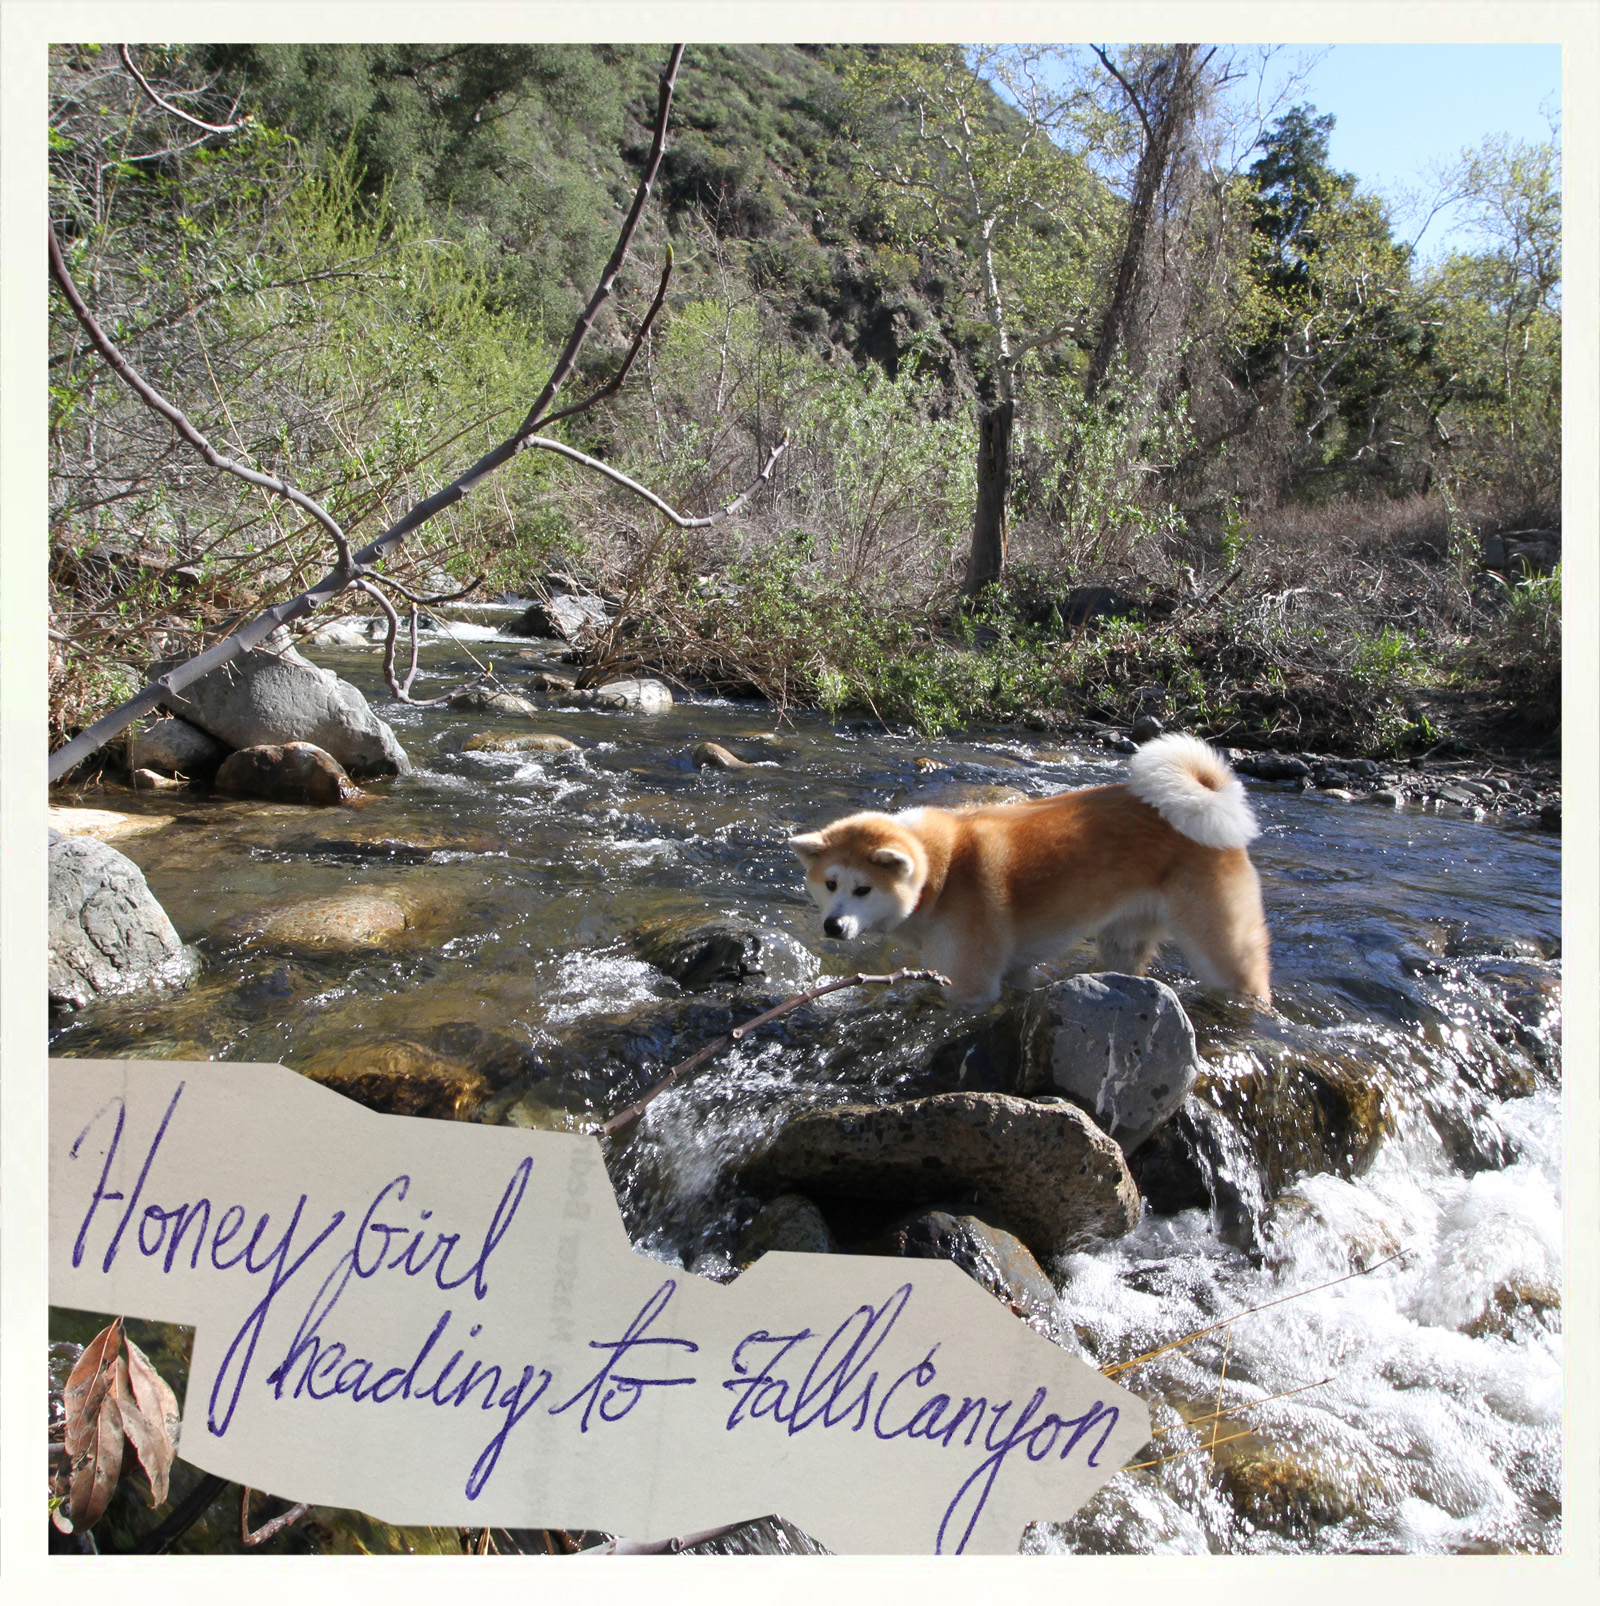 falls-canyon-honeygirl